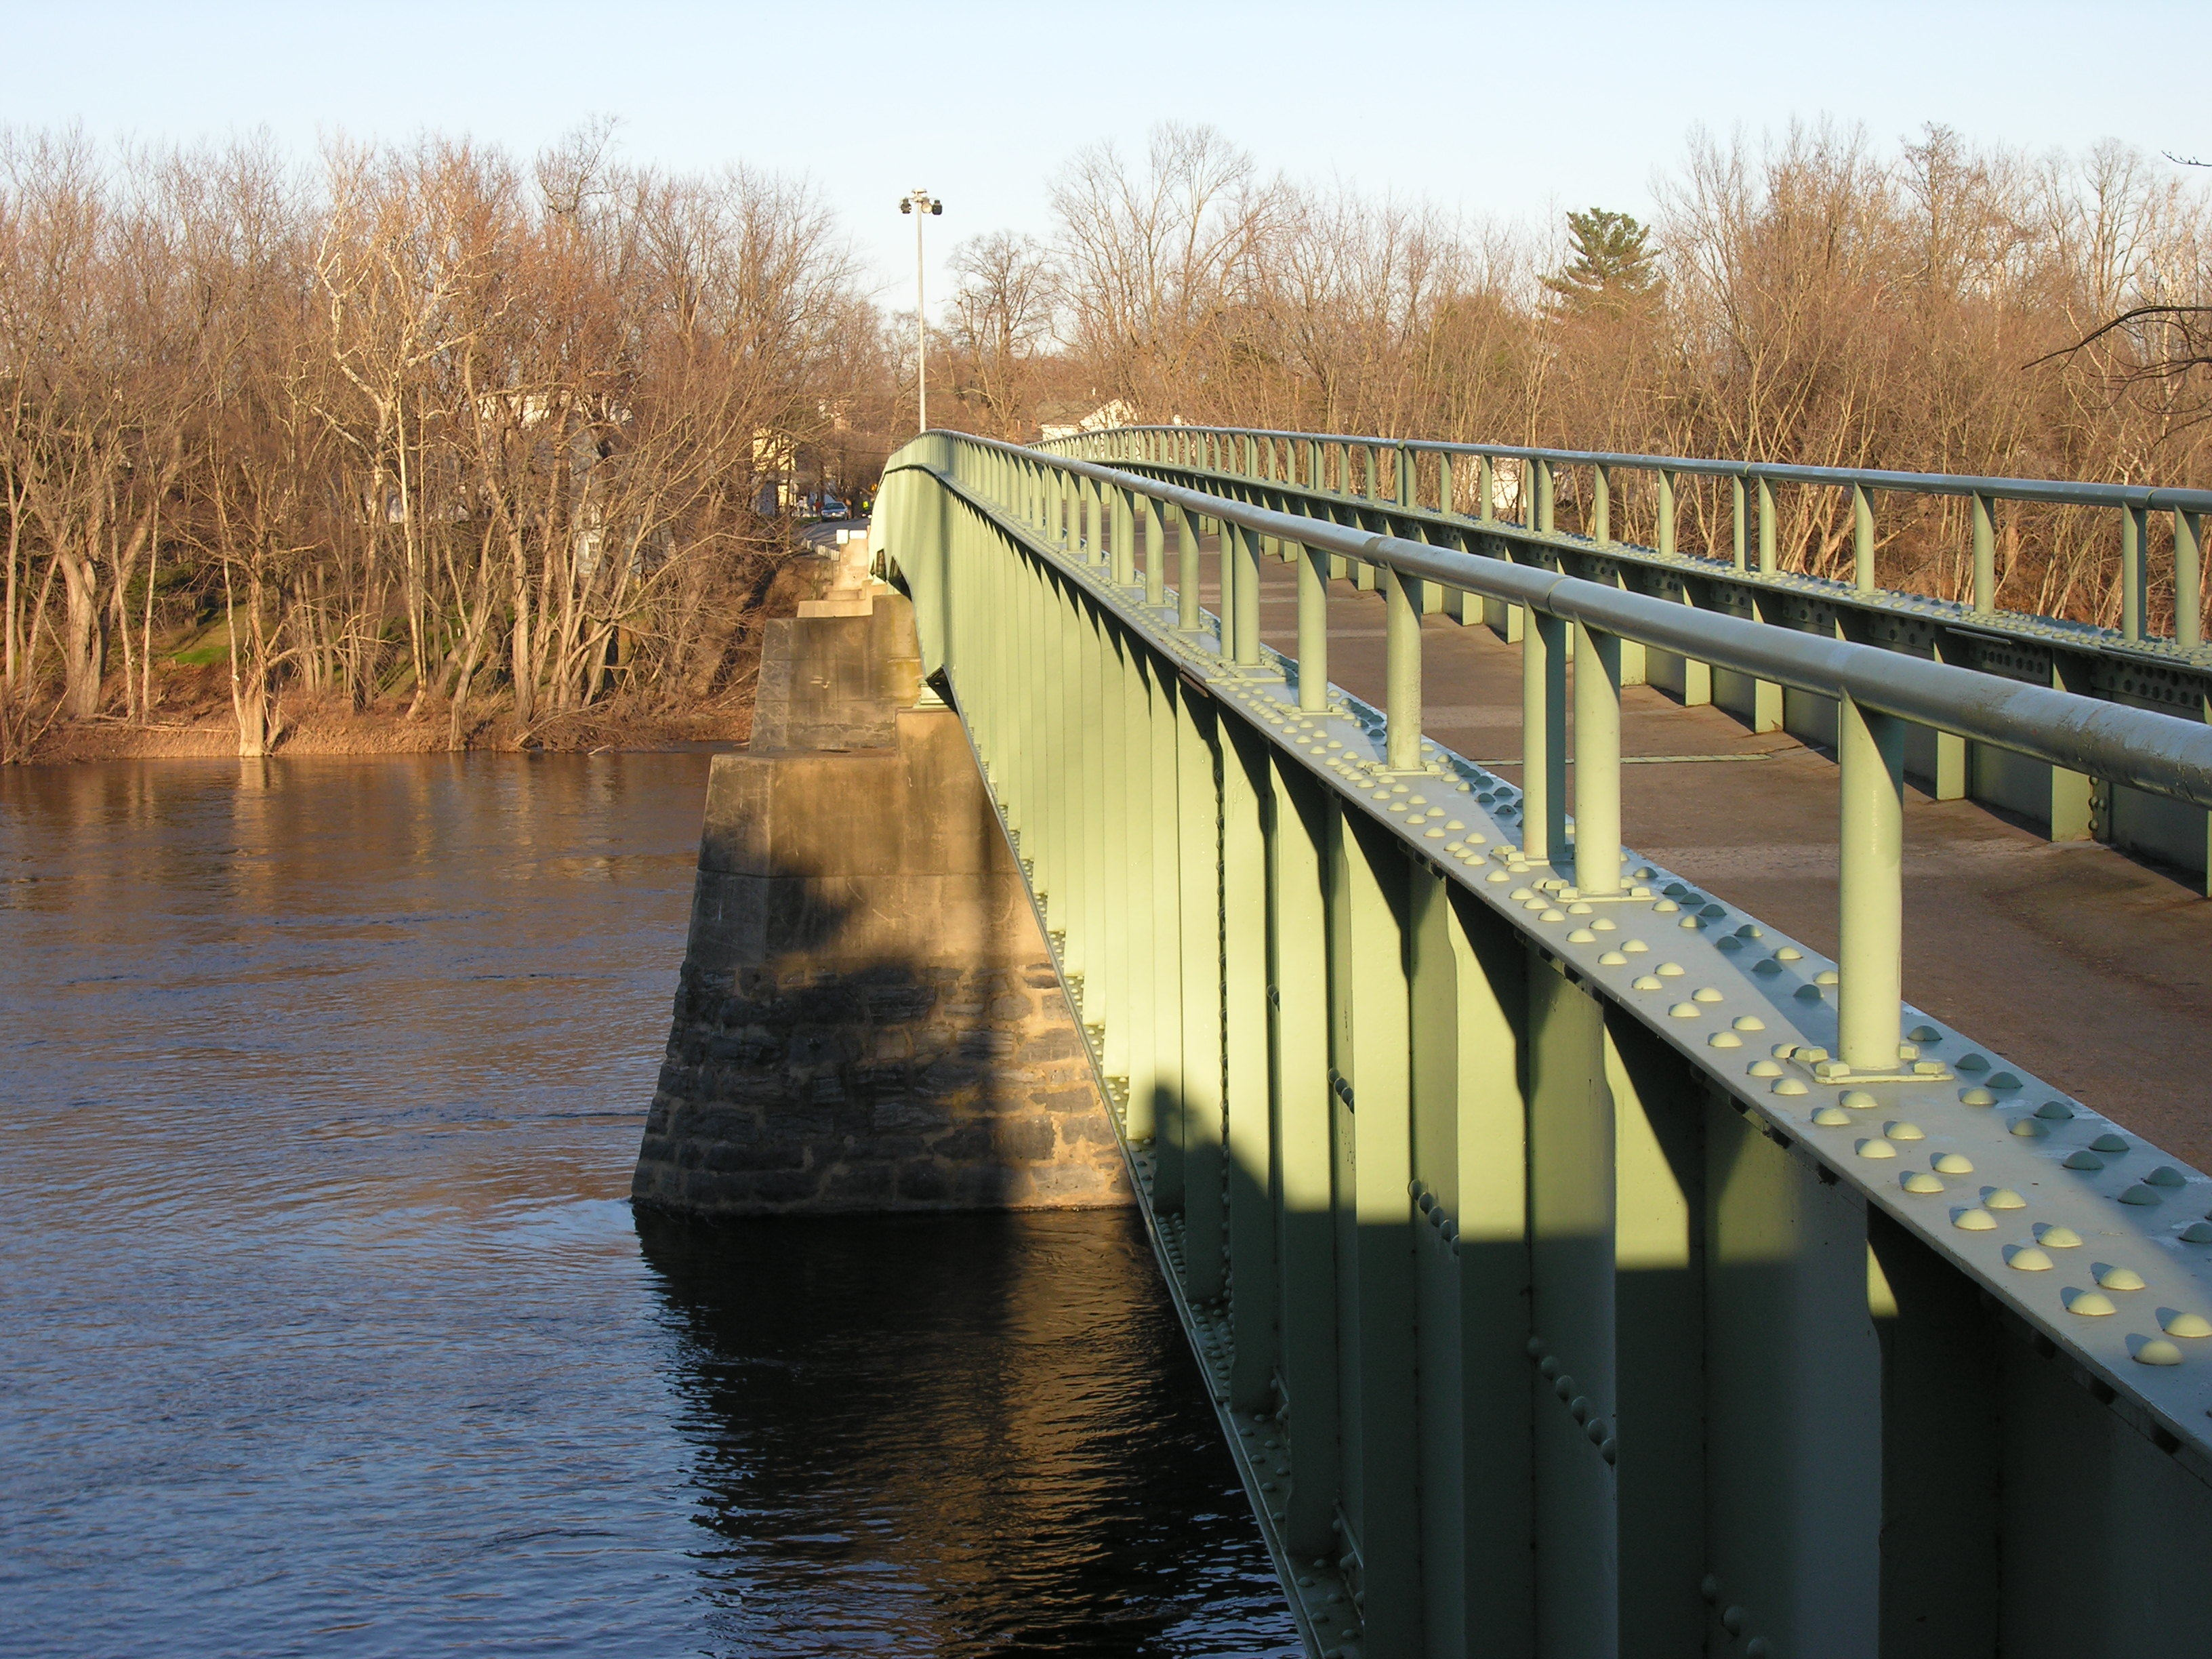 The Portland-Columbia Pedestrian Bridge, which spans the Delaware River between Columbia, NJ (part of Knowlton Township) and Portland, PA, was rebuilt after it was destroyed in flooding caused by Hurricane Diane in 1955.